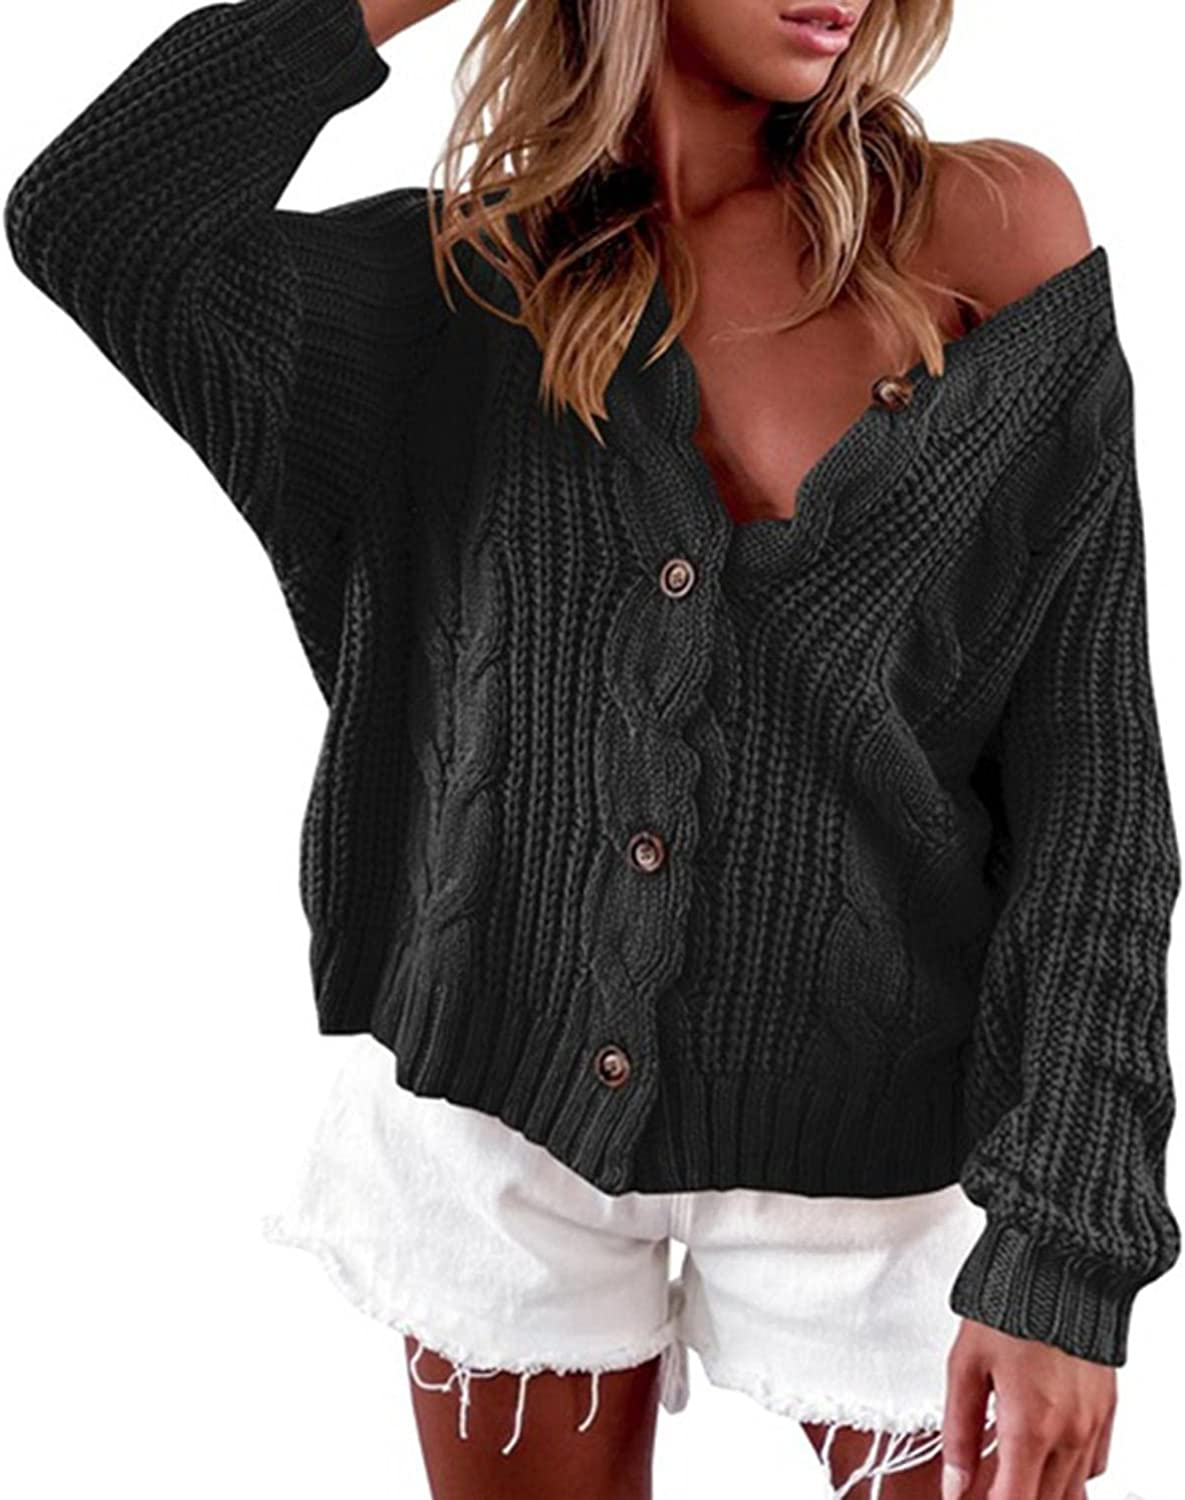 Gibobby Sweaters for Women Casual,Womens Oversized Button Sweaters Long Sleeve Loose V Neck Pullover Knitted Jumper Coat